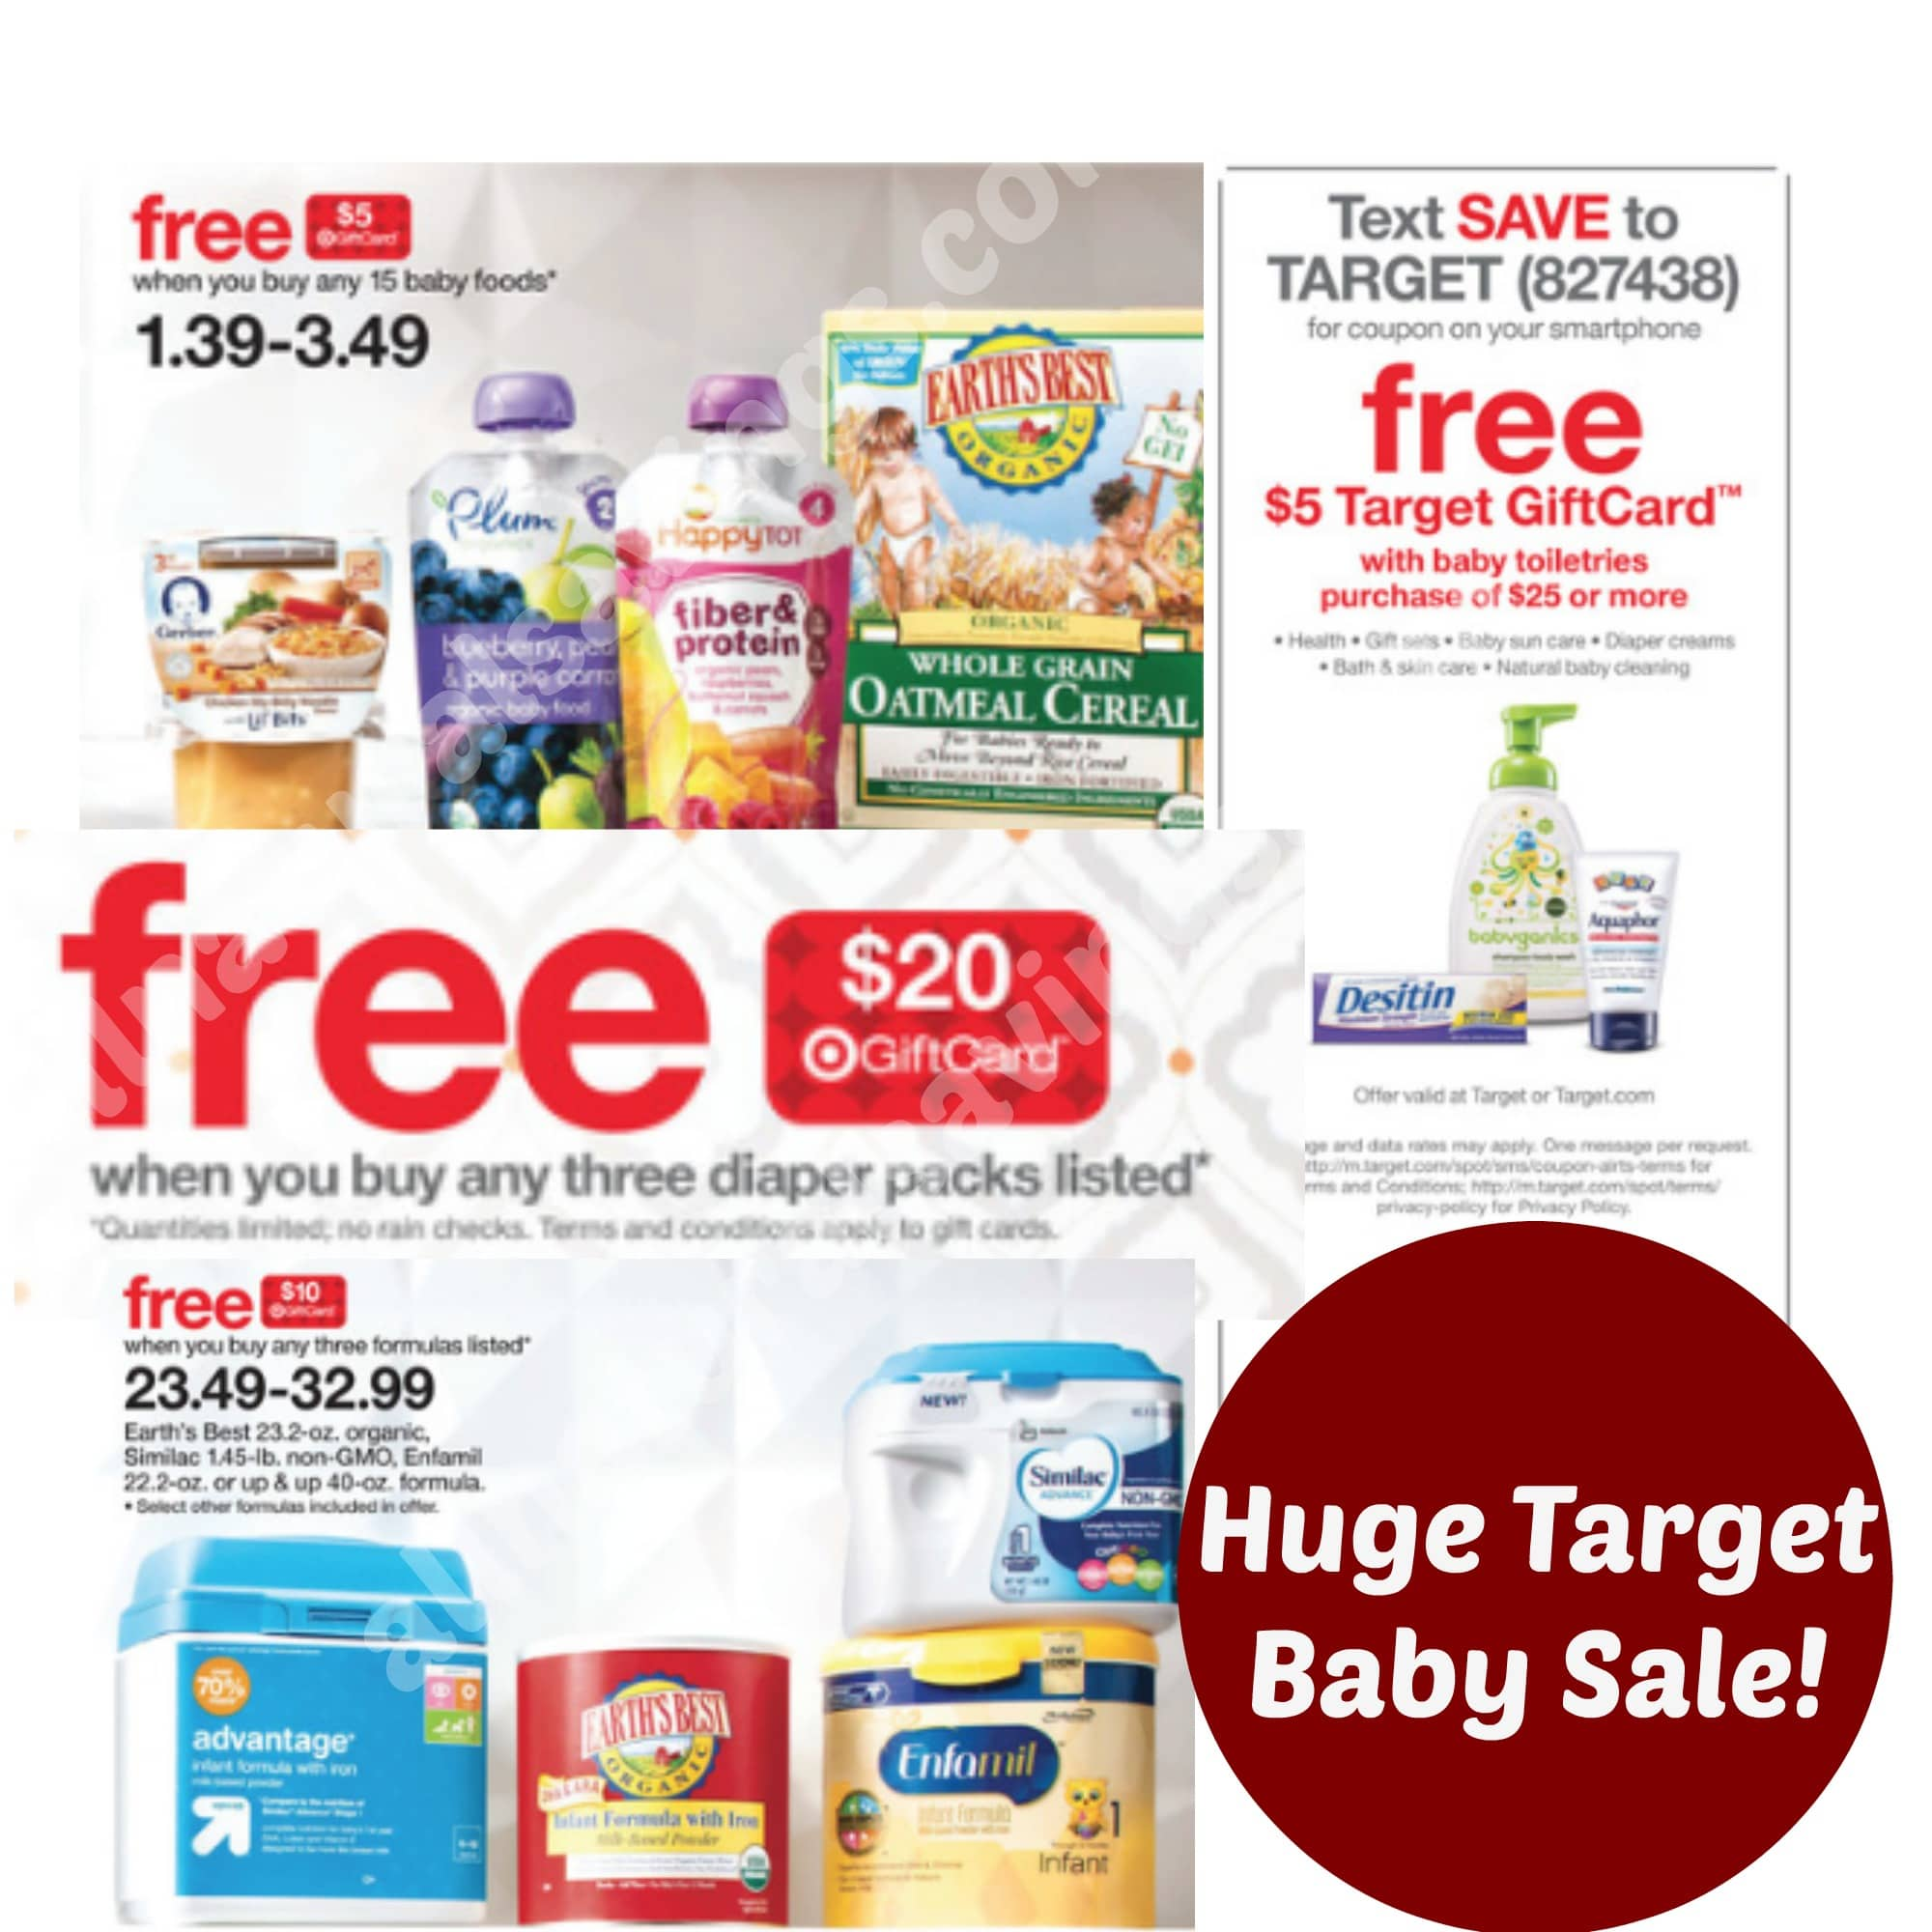 Shop Target for a wide variety of baby products including clothing, gear, furniture, feeding and more. Free shipping & returns plus same-day in-store pickup.